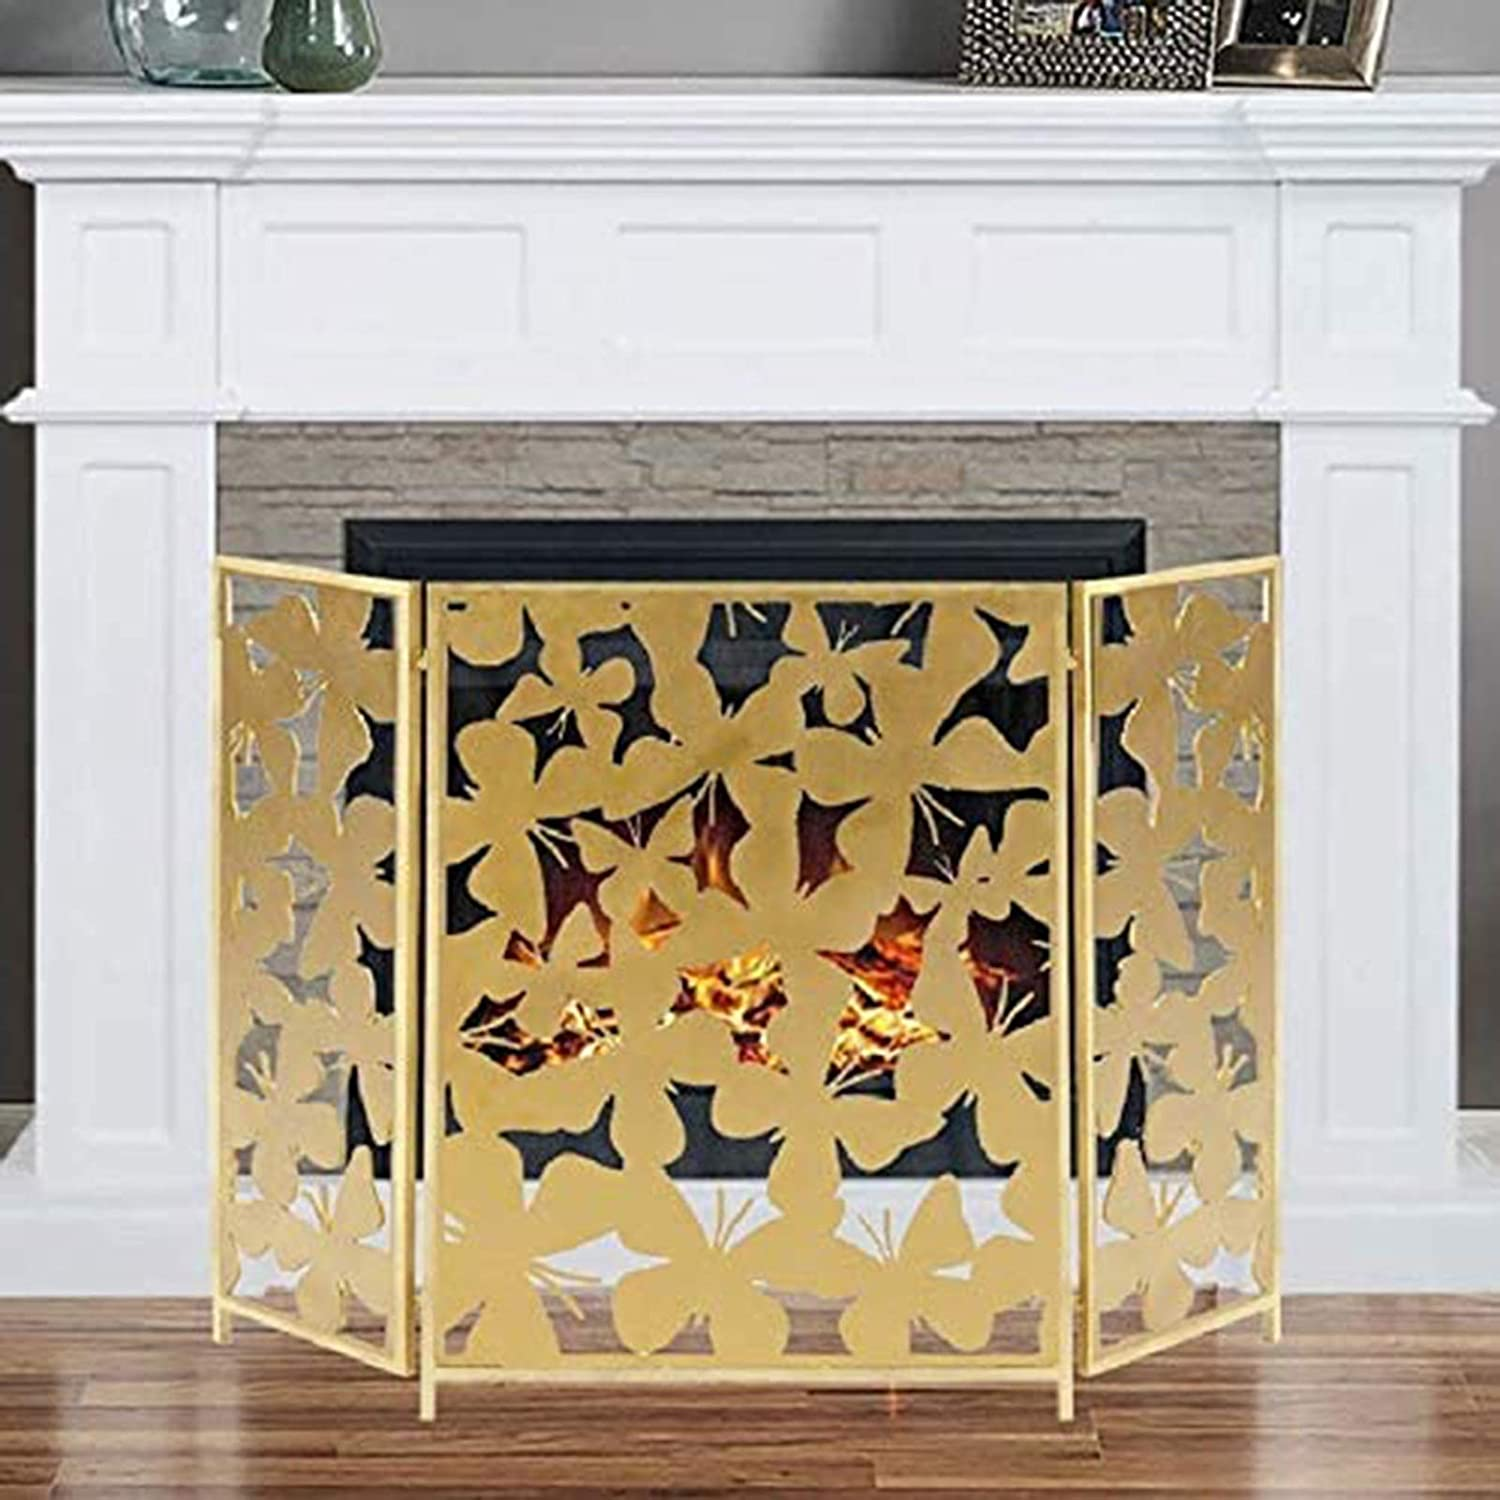 3 Special price for a limited time Panel Folding Fireplace Screen Butterfly Pattern Modern with Super sale period limited